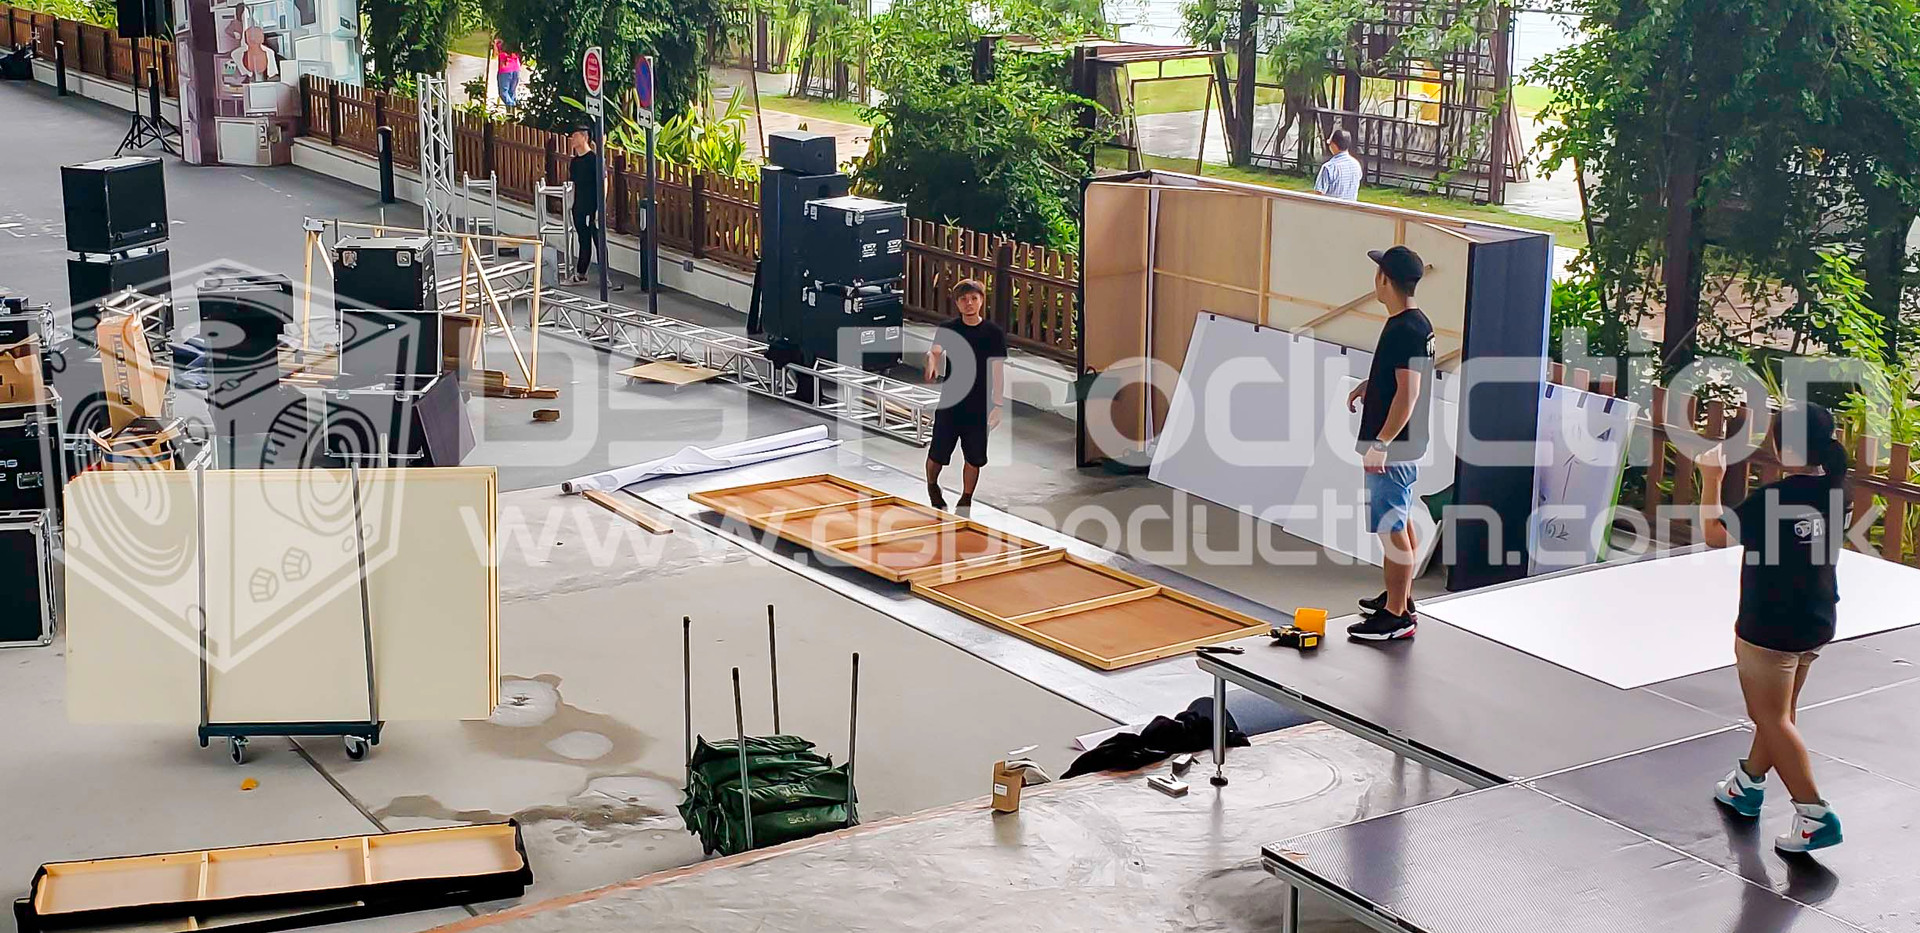 Outdoor Stage Construction